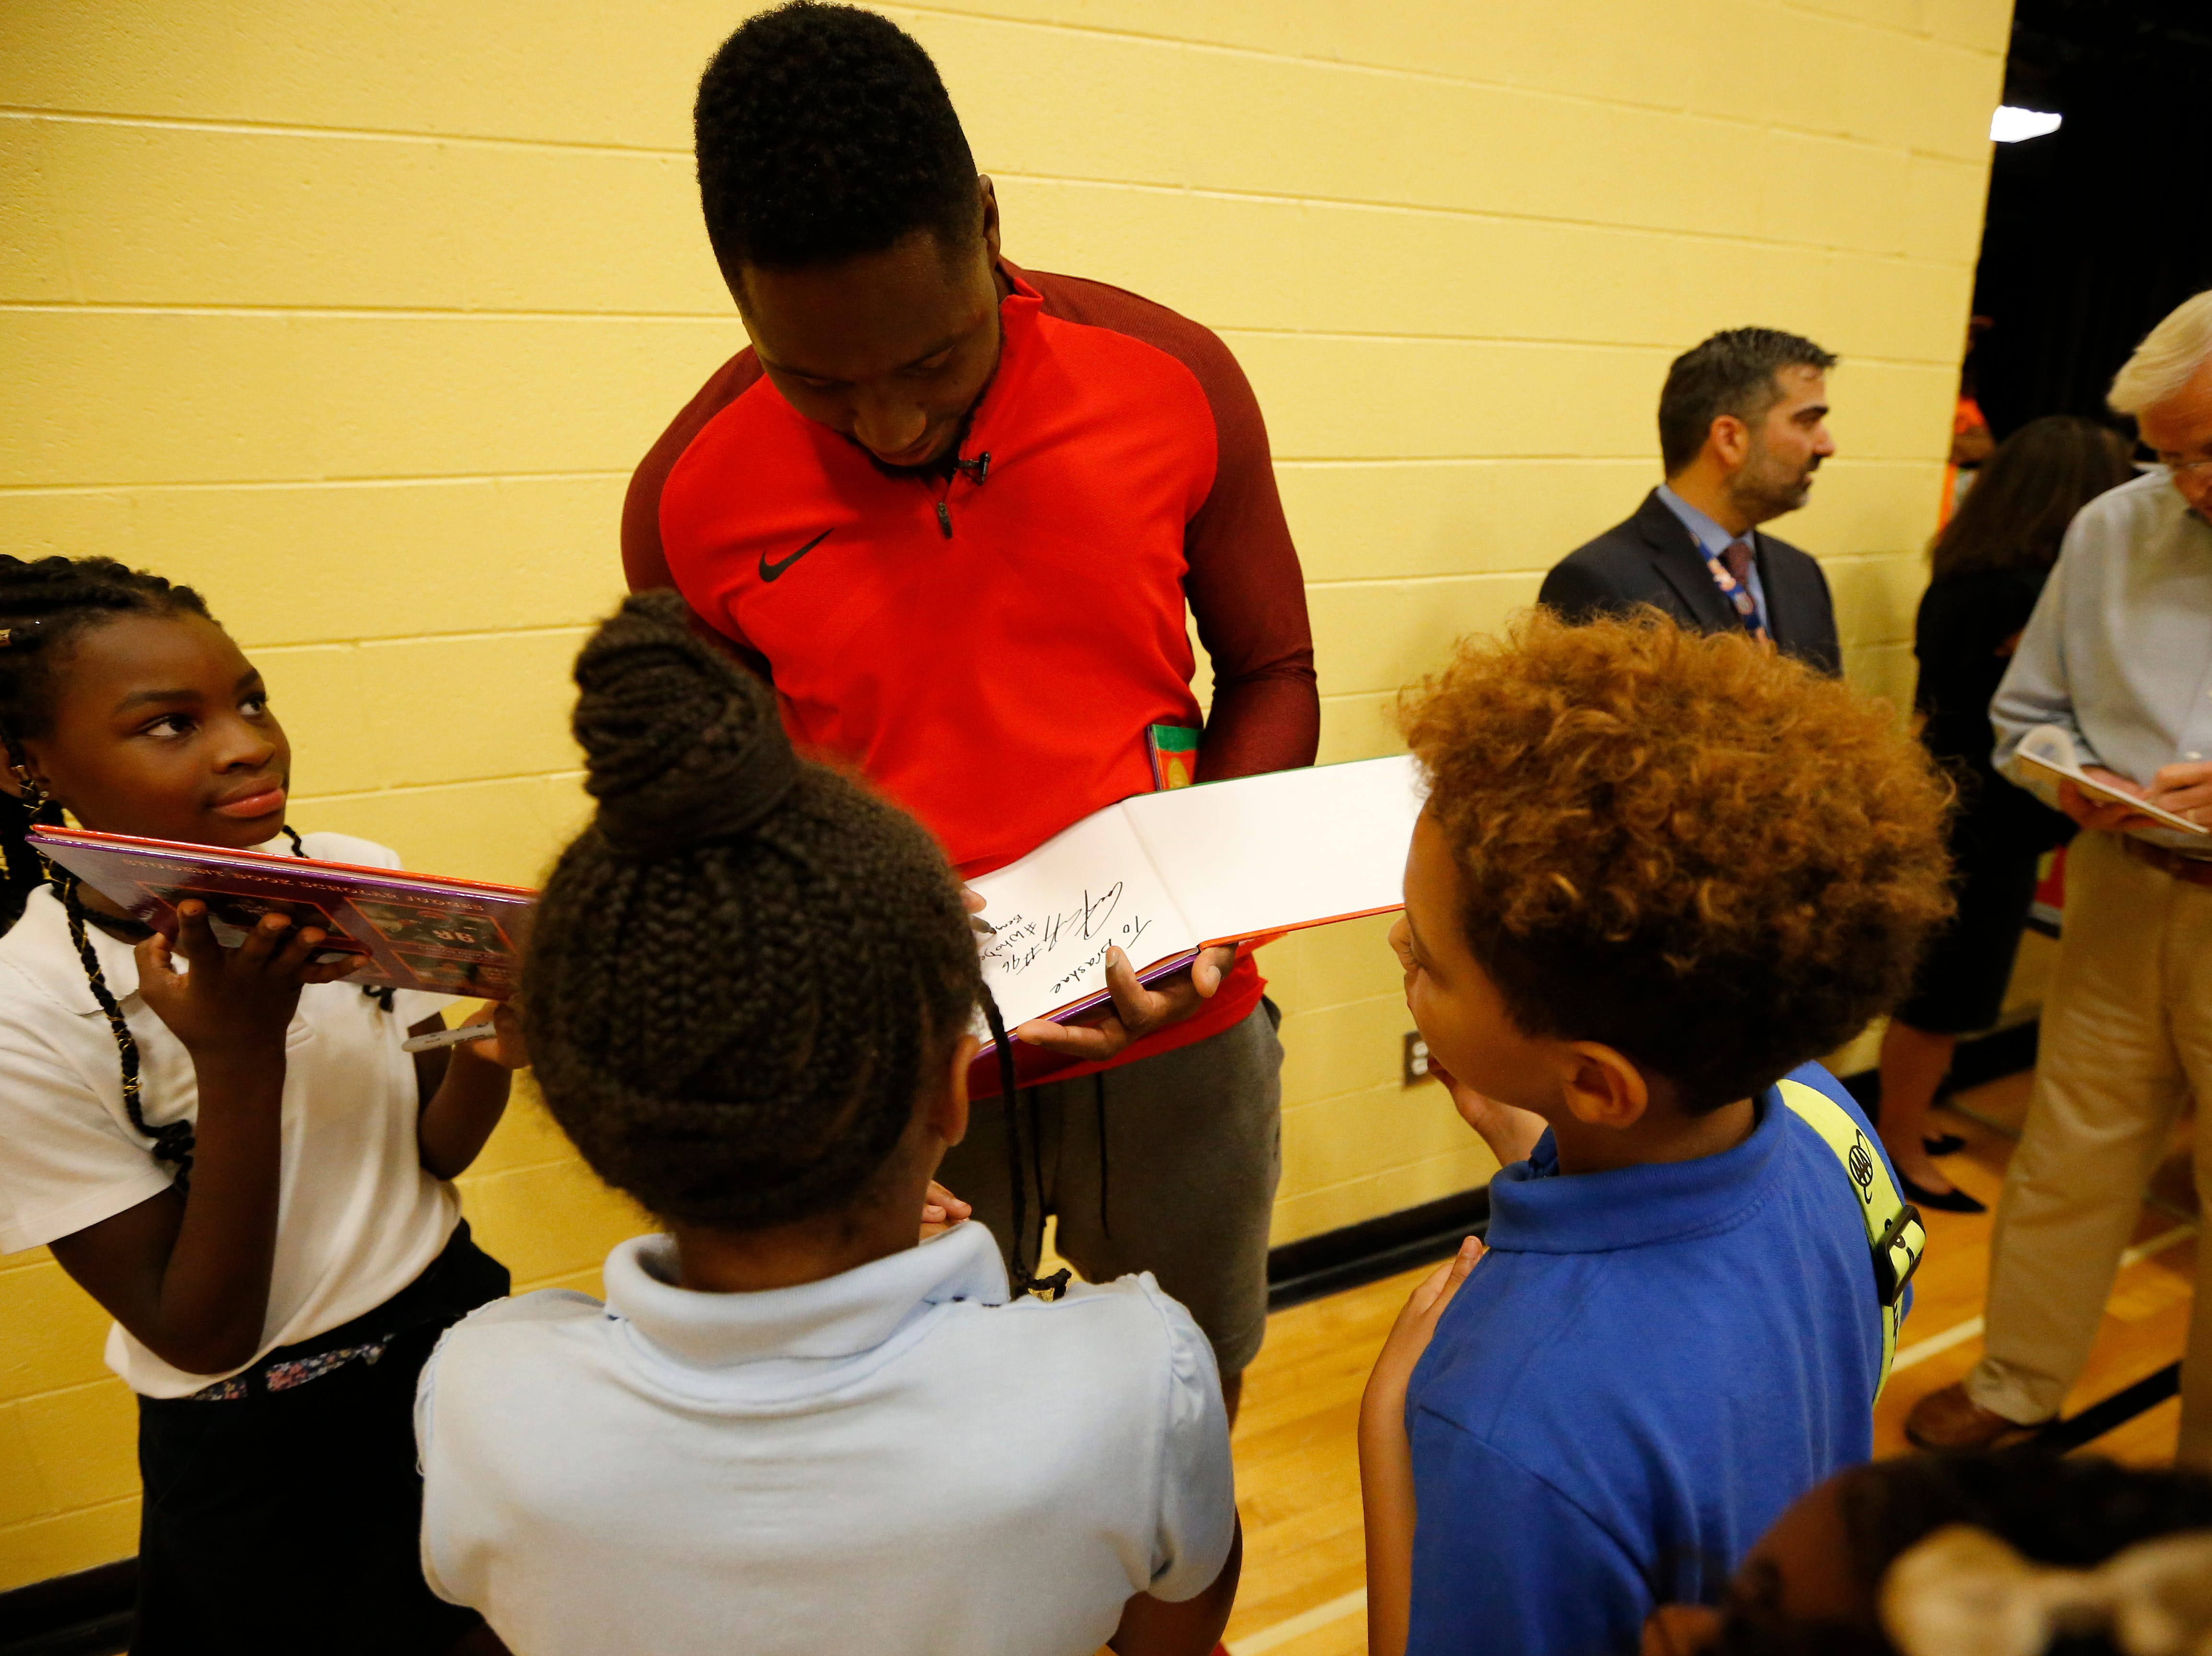 """Carlos Dunlap signs autographs for students at Winton Hills Academy in Cincinnati on Tuesday, Sept. 18, 2018. Five students of the academy were named winners, becoming published authors, of a national contest for a book about anti-bullying. The students' book, """"Misunderstanding Micah"""" was selected as the winner of the 2018 National Student Book Scholar Competition by The National Youth Foundation."""